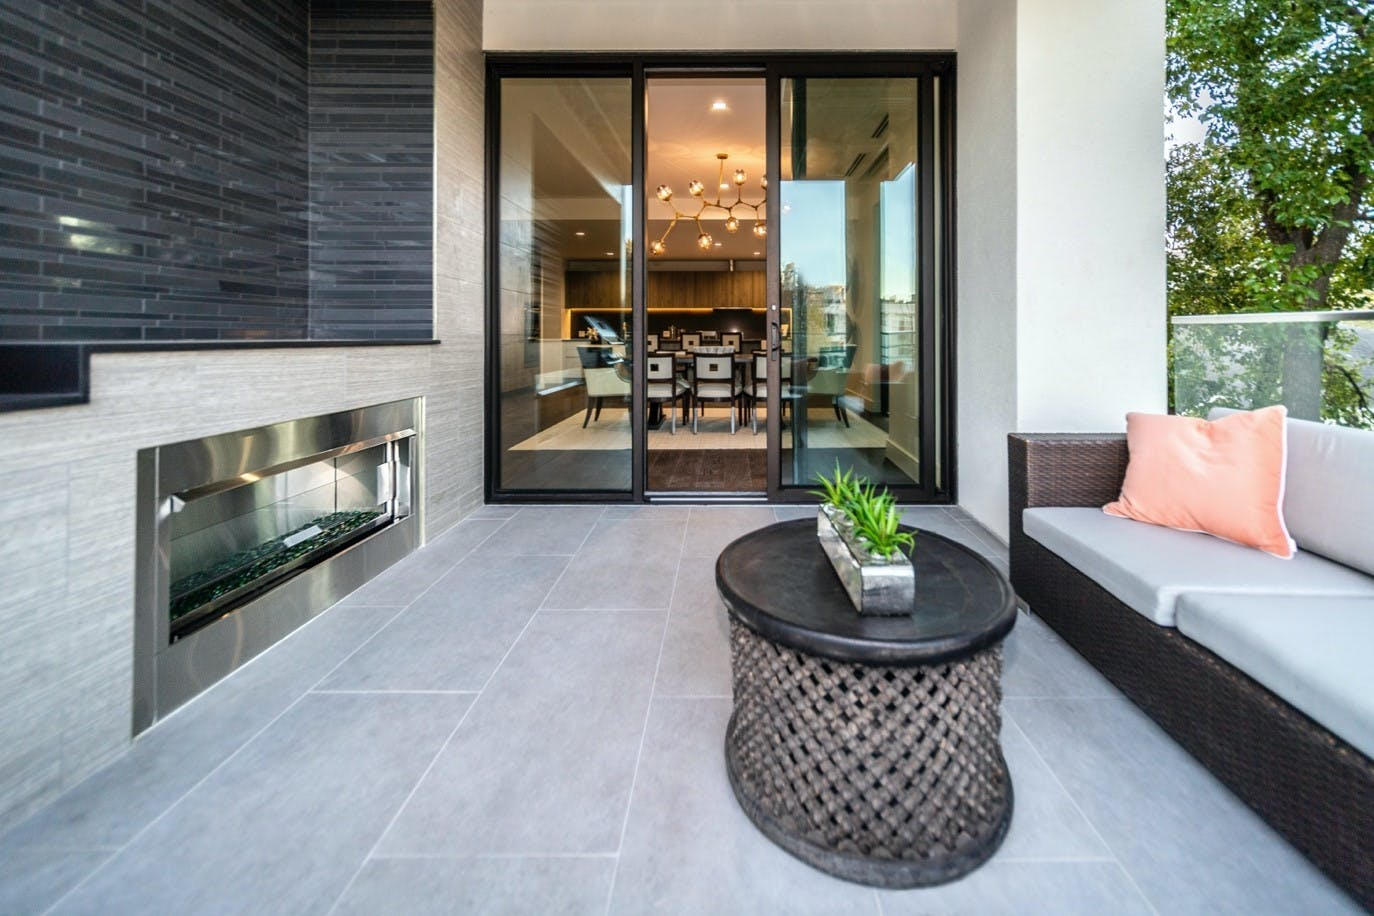 Image of terraza 1 in Terraces: the protagonists of a summer at home - Cosentino